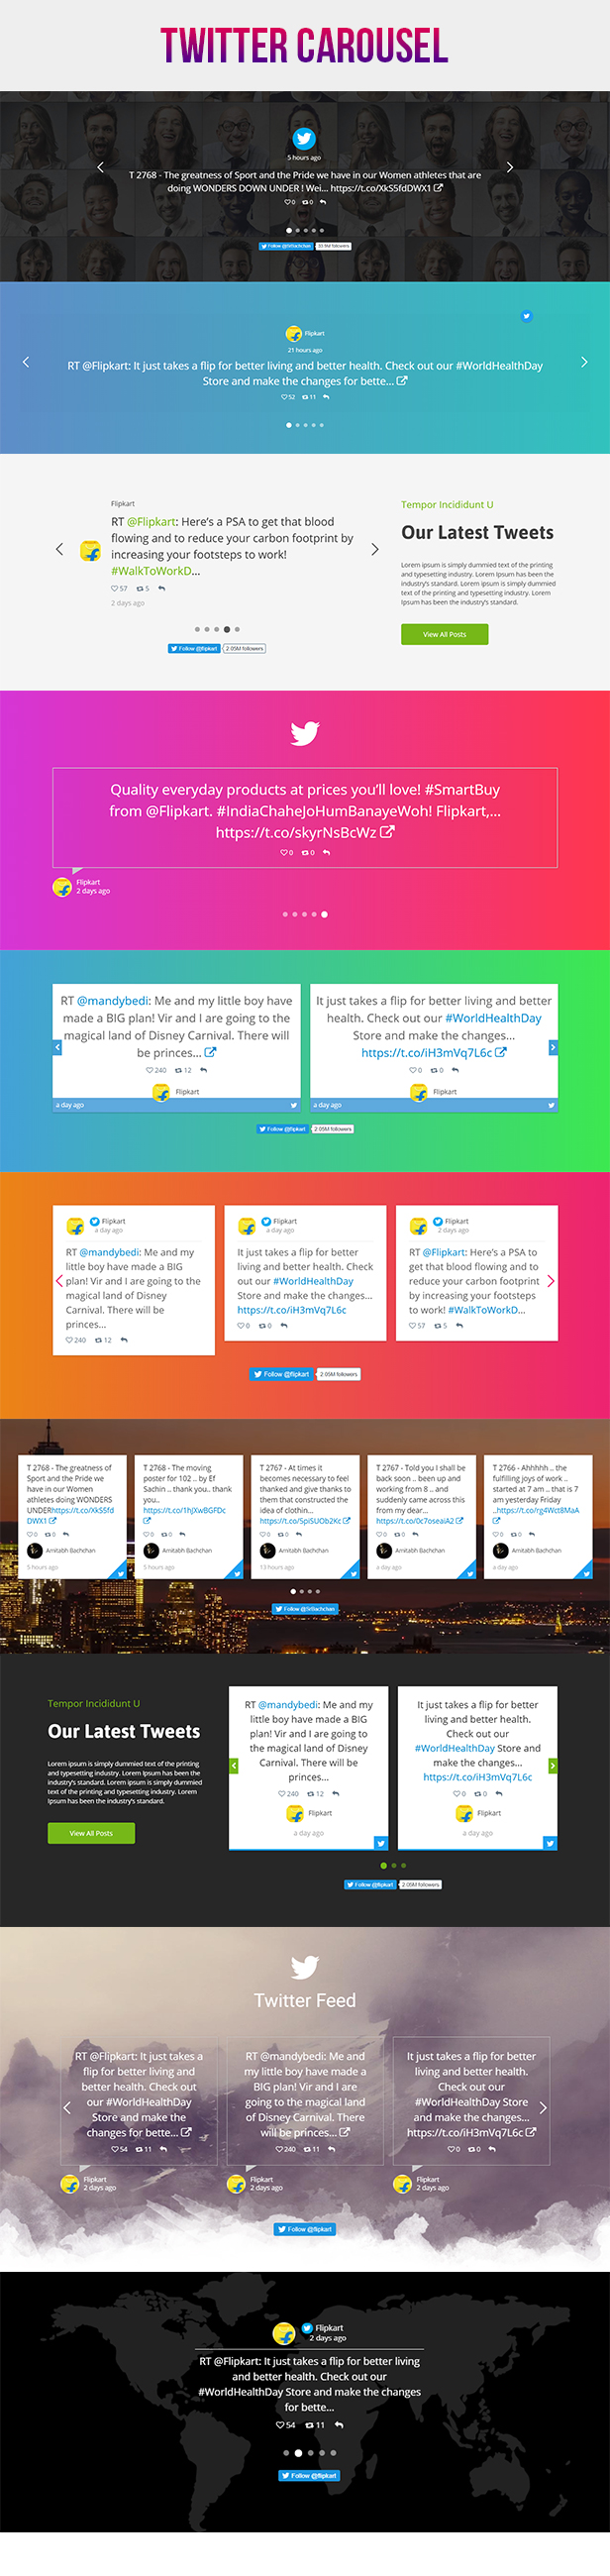 Visual Composer - Twitter Feed Stream Grid With Carousel